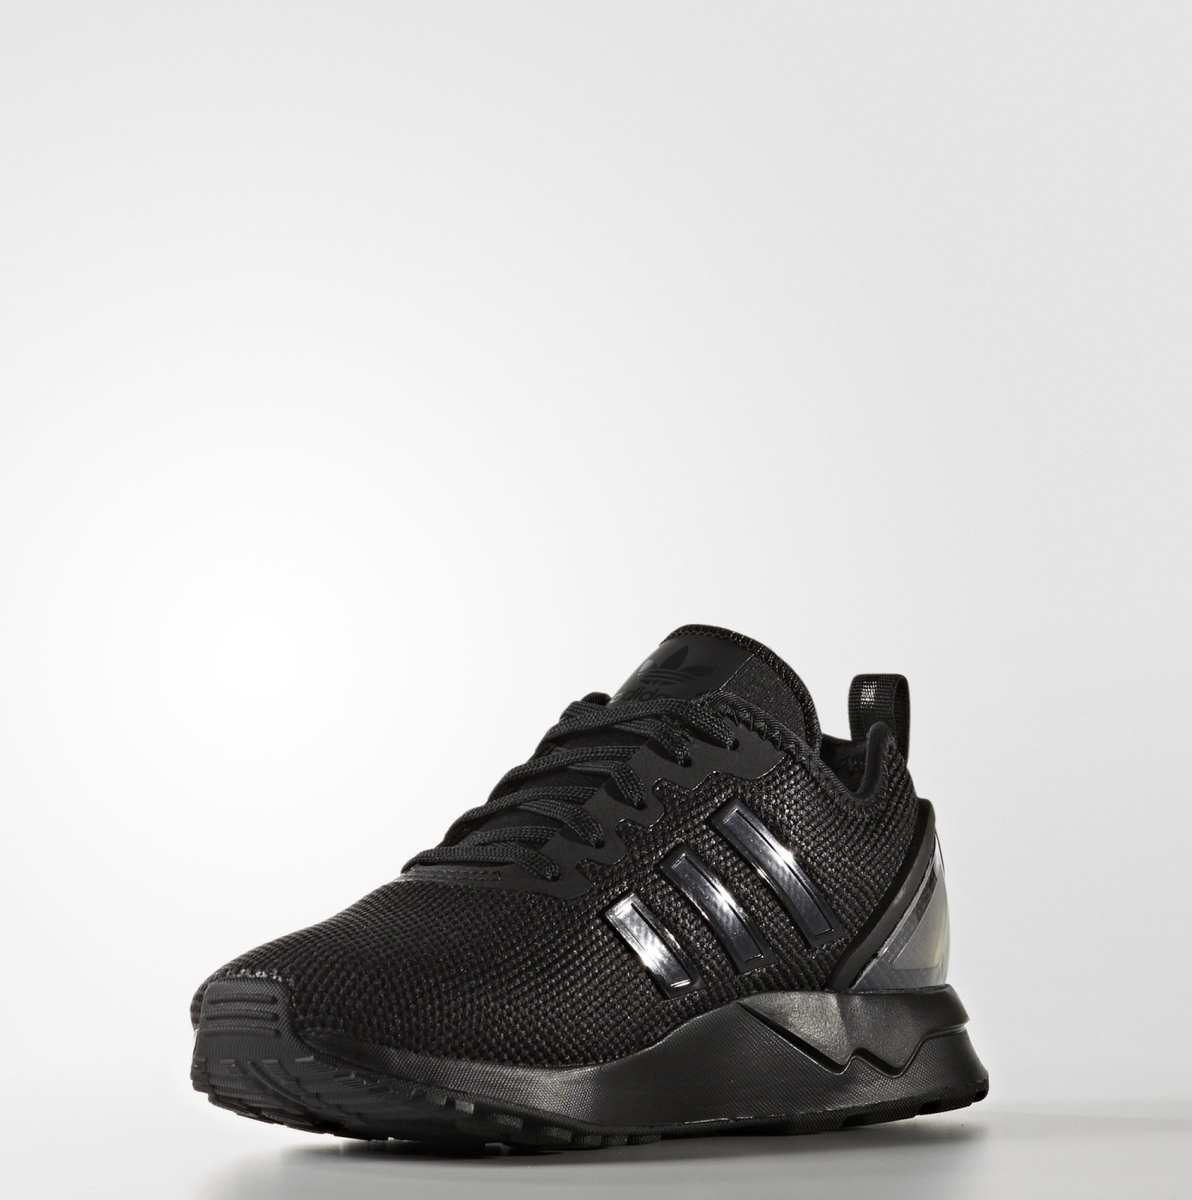 low priced daa4c 926d9 ... Adidas Zx Flux Adv S76251 ...